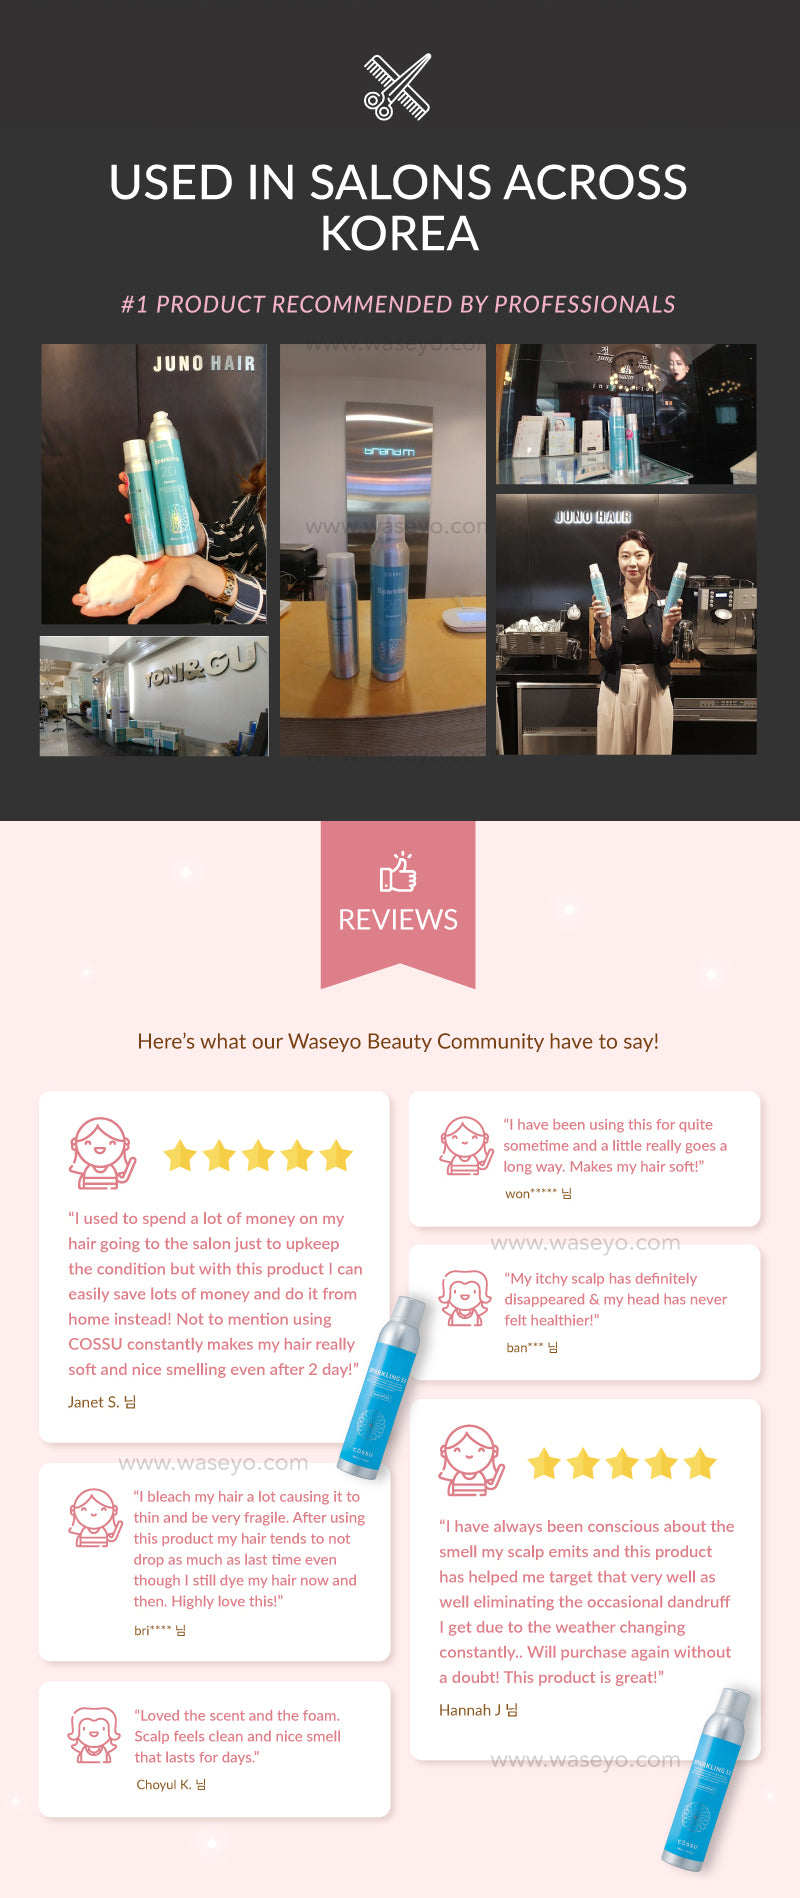 No.1 Product recommended by Korea Professional Hair Salons! Used by top chain hair salons like Juno Hair, Toni and Guy etc. Check out the reviews by our beauty community in Korea!